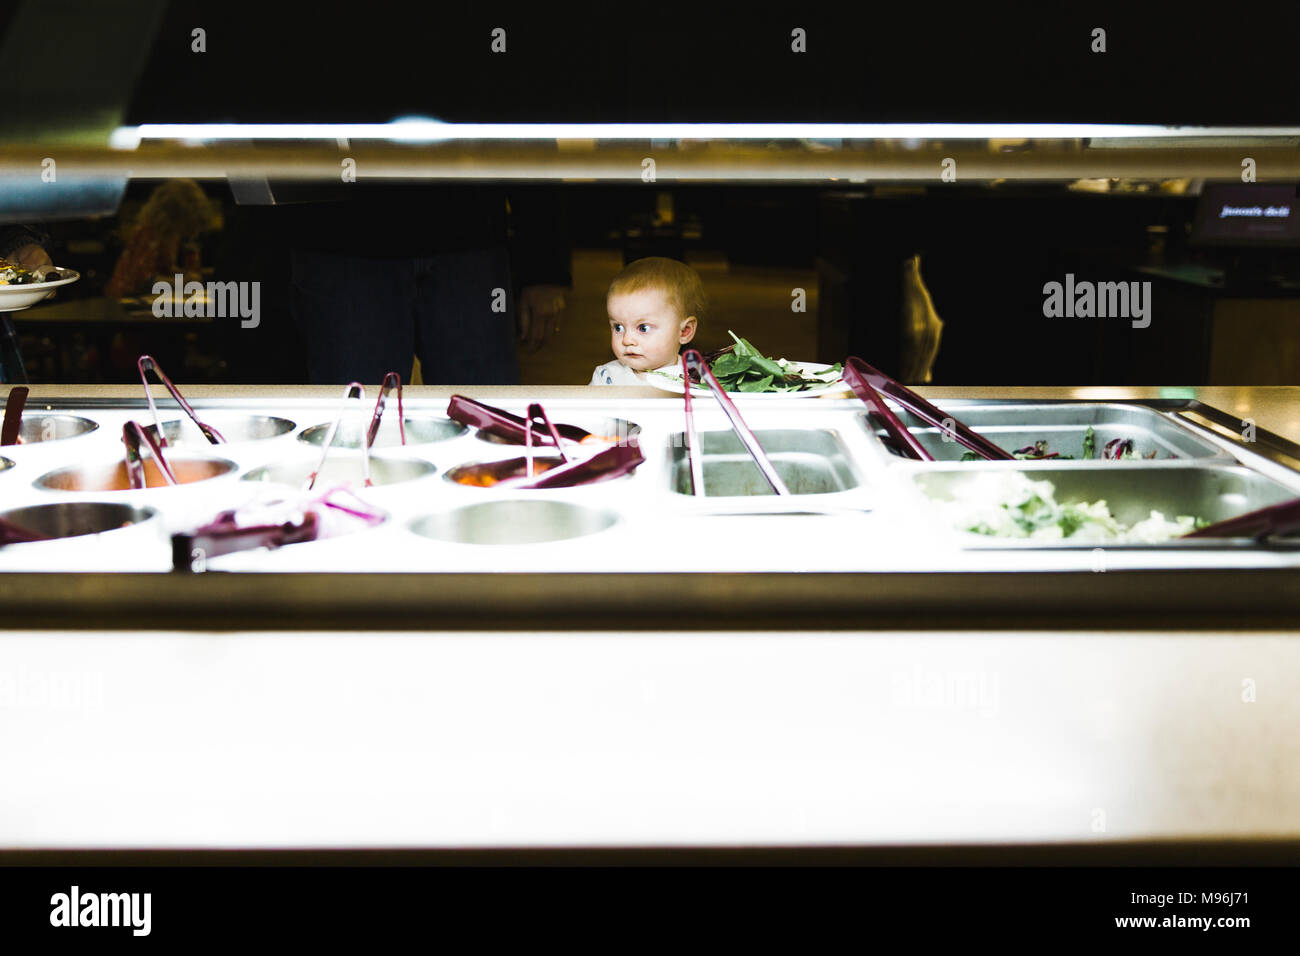 Baby looking over salad bar - Stock Image